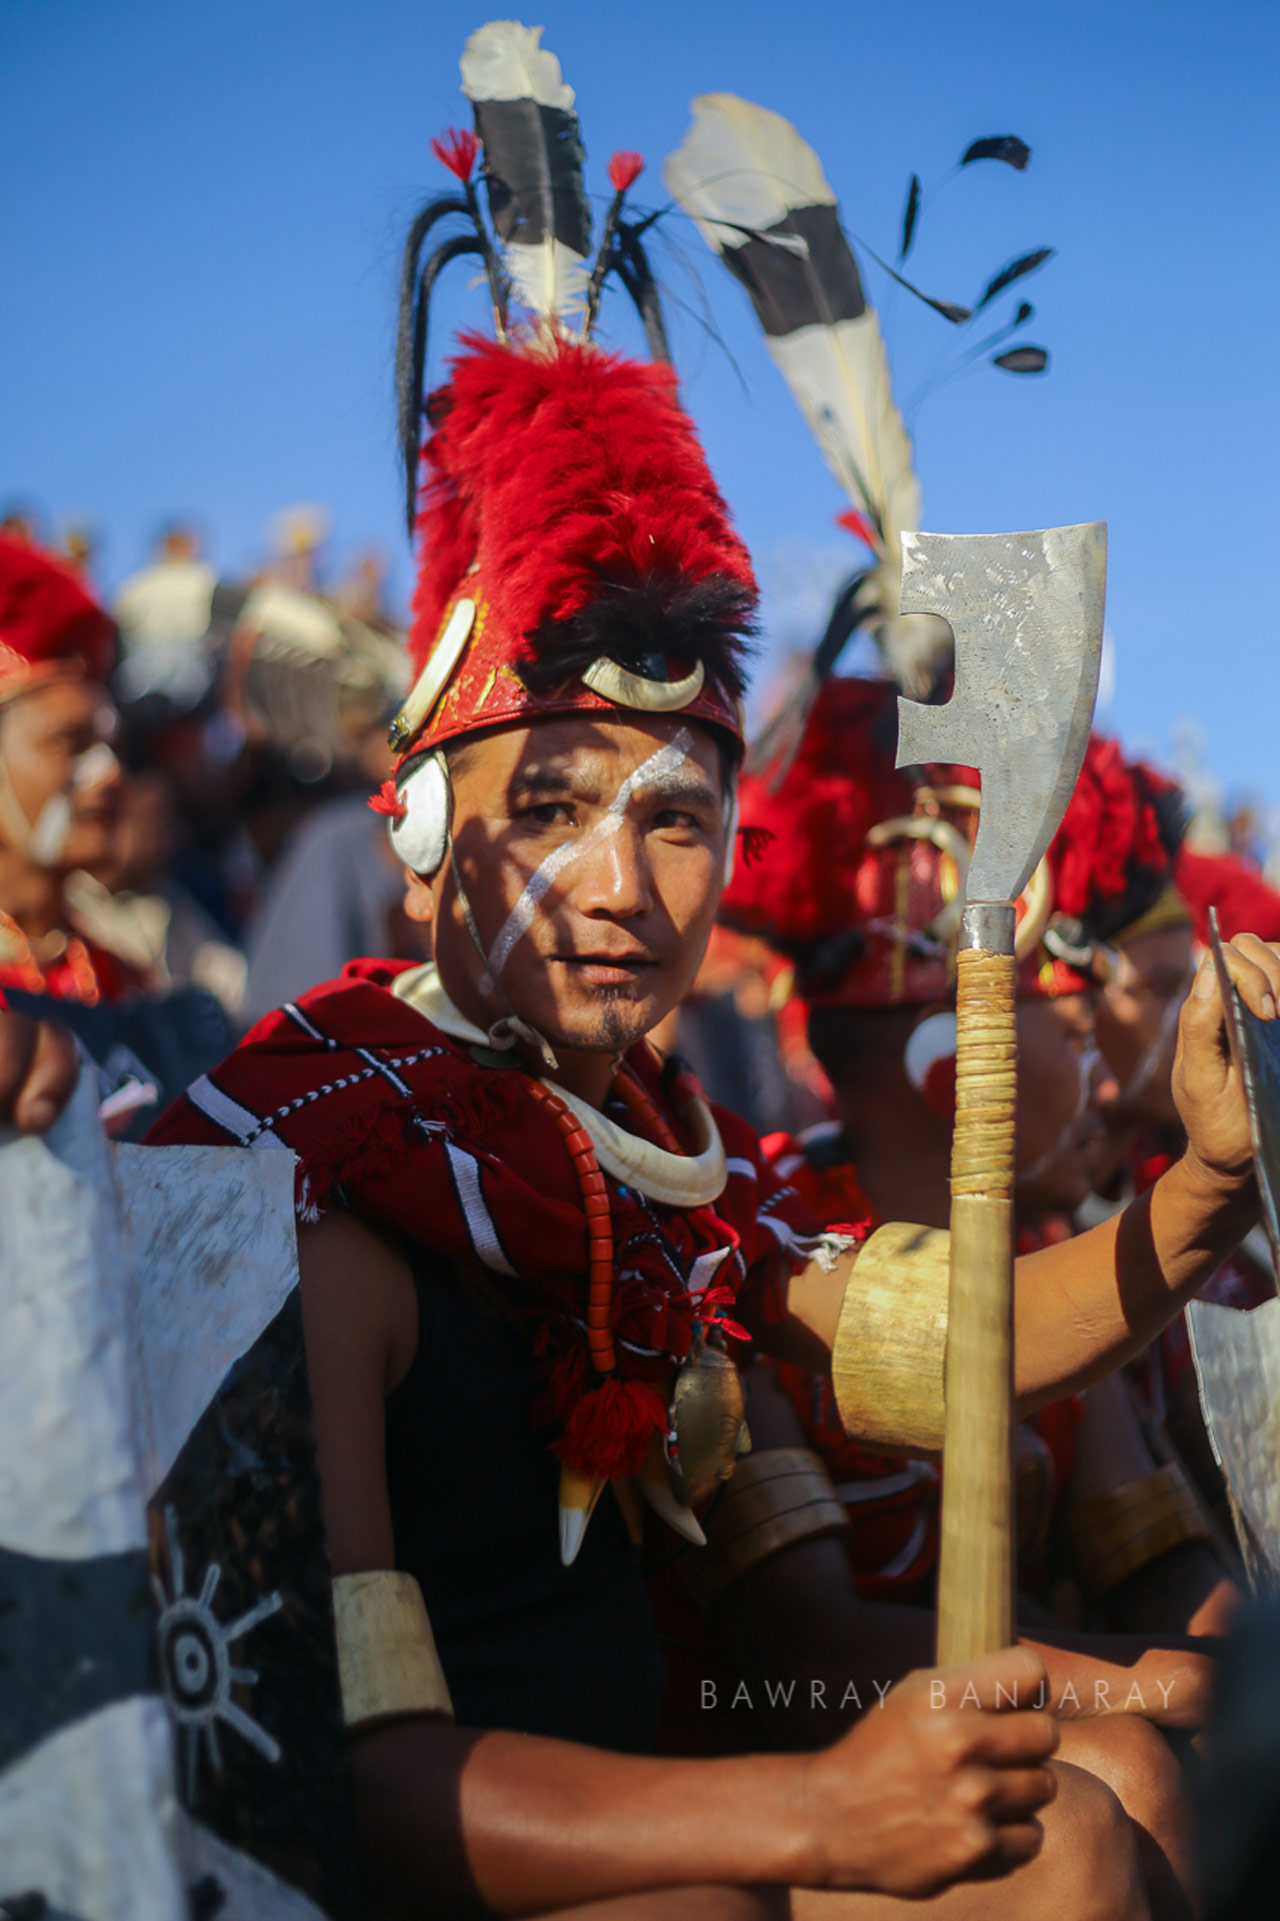 A young performer at the festival in Nagaland